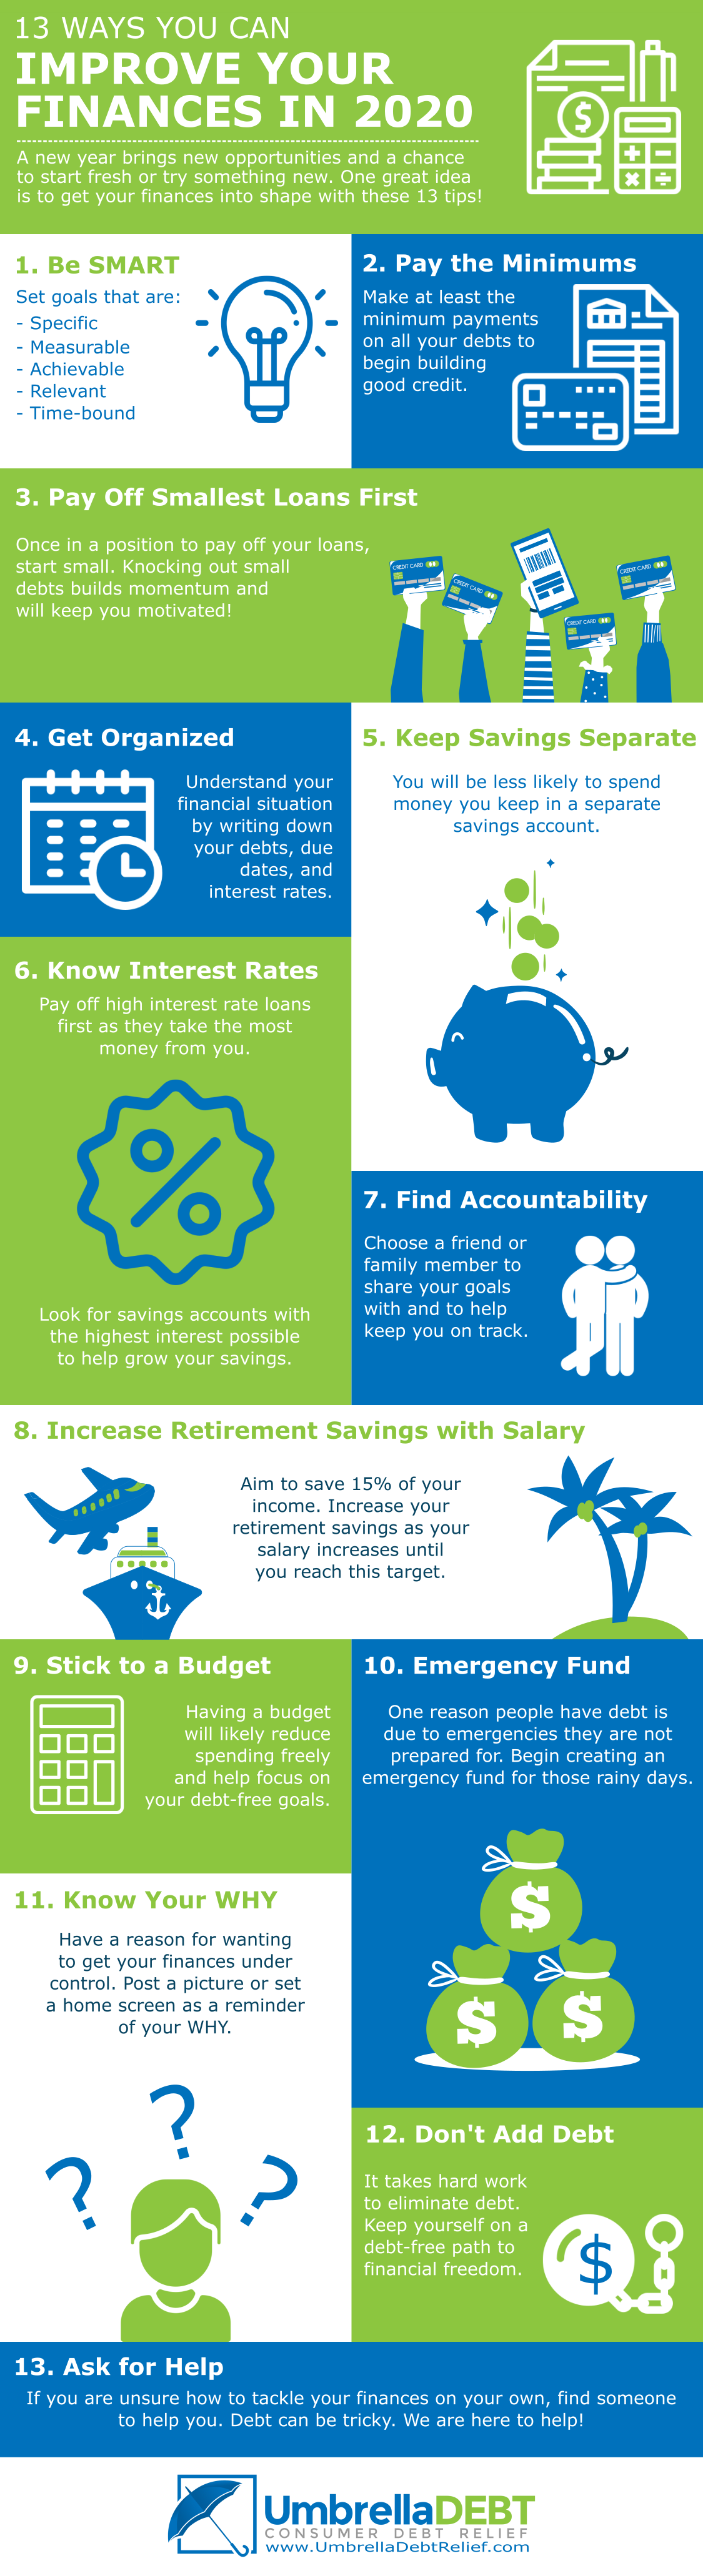 UDR INFOGRAPHIC JULY20 - 13 Steps You Can Take to Improve Finances in 2020